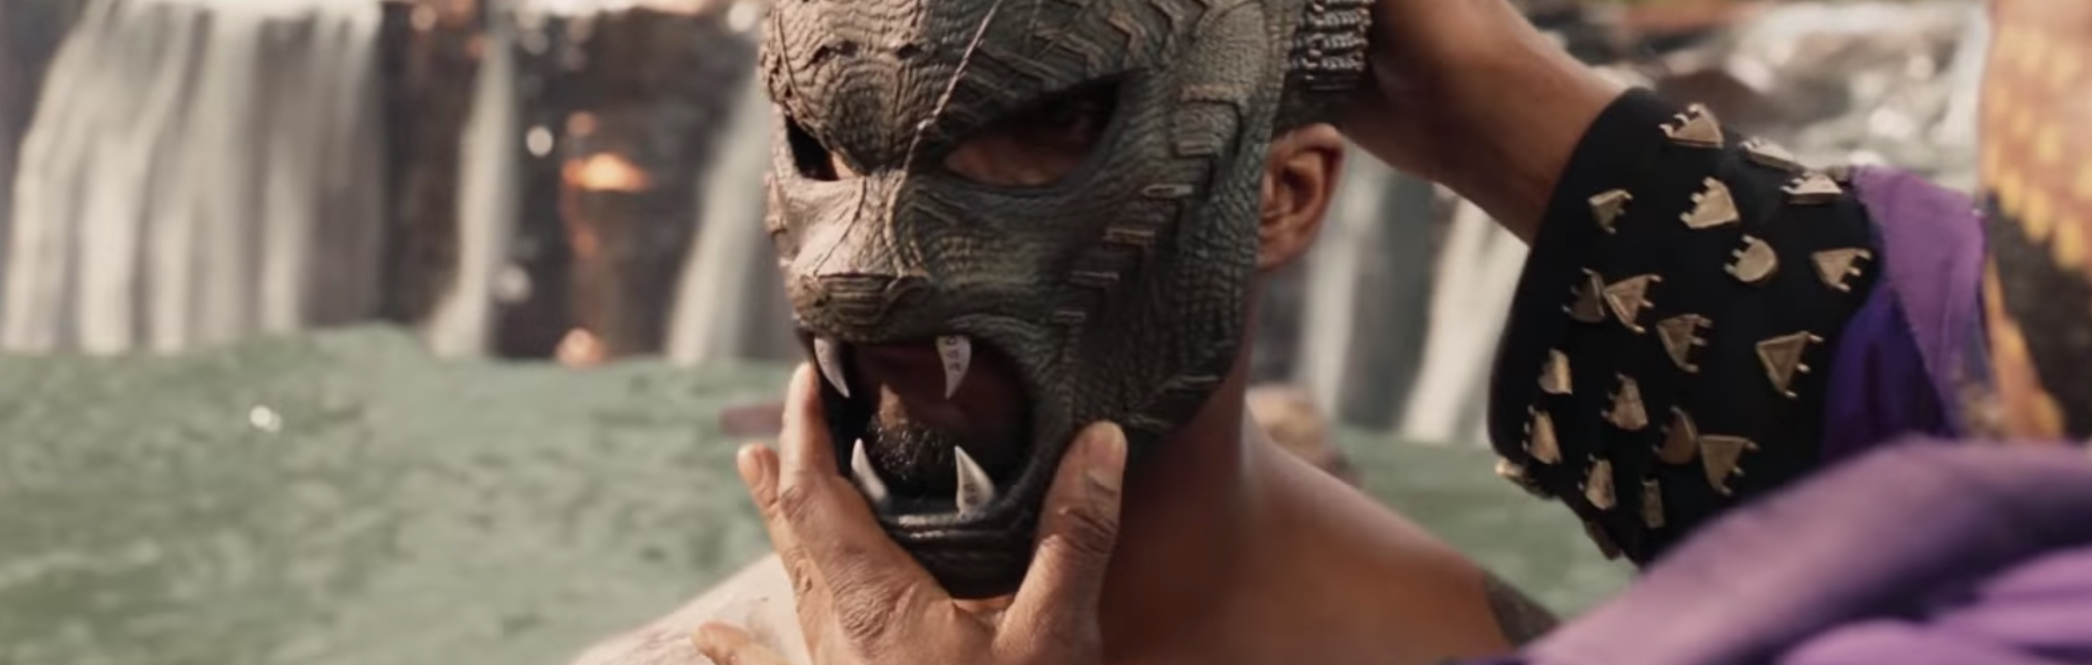 'Black Panther' Has a Rapturous Blend of Tech, Polity and Nativity